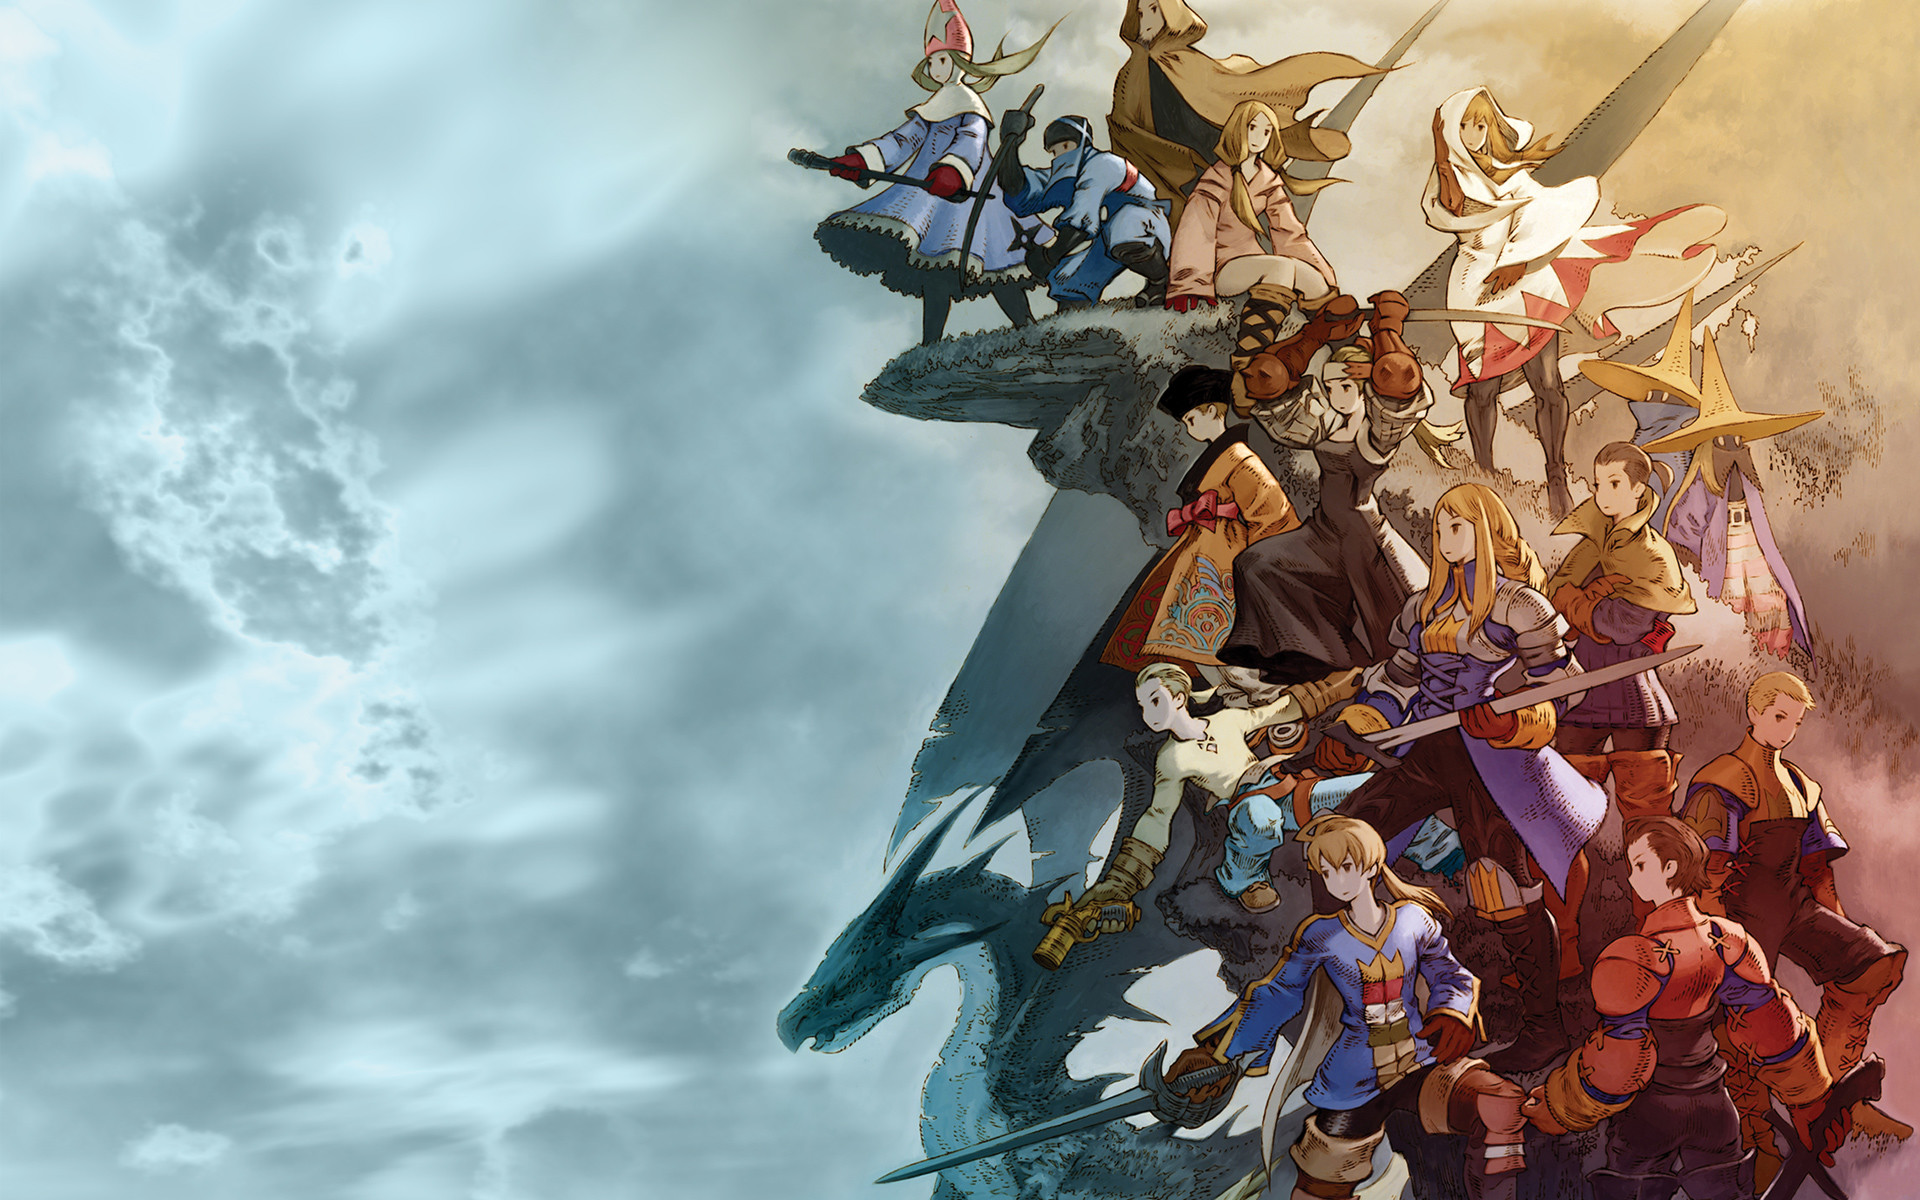 Final Fantasy Wallpapers – FFT